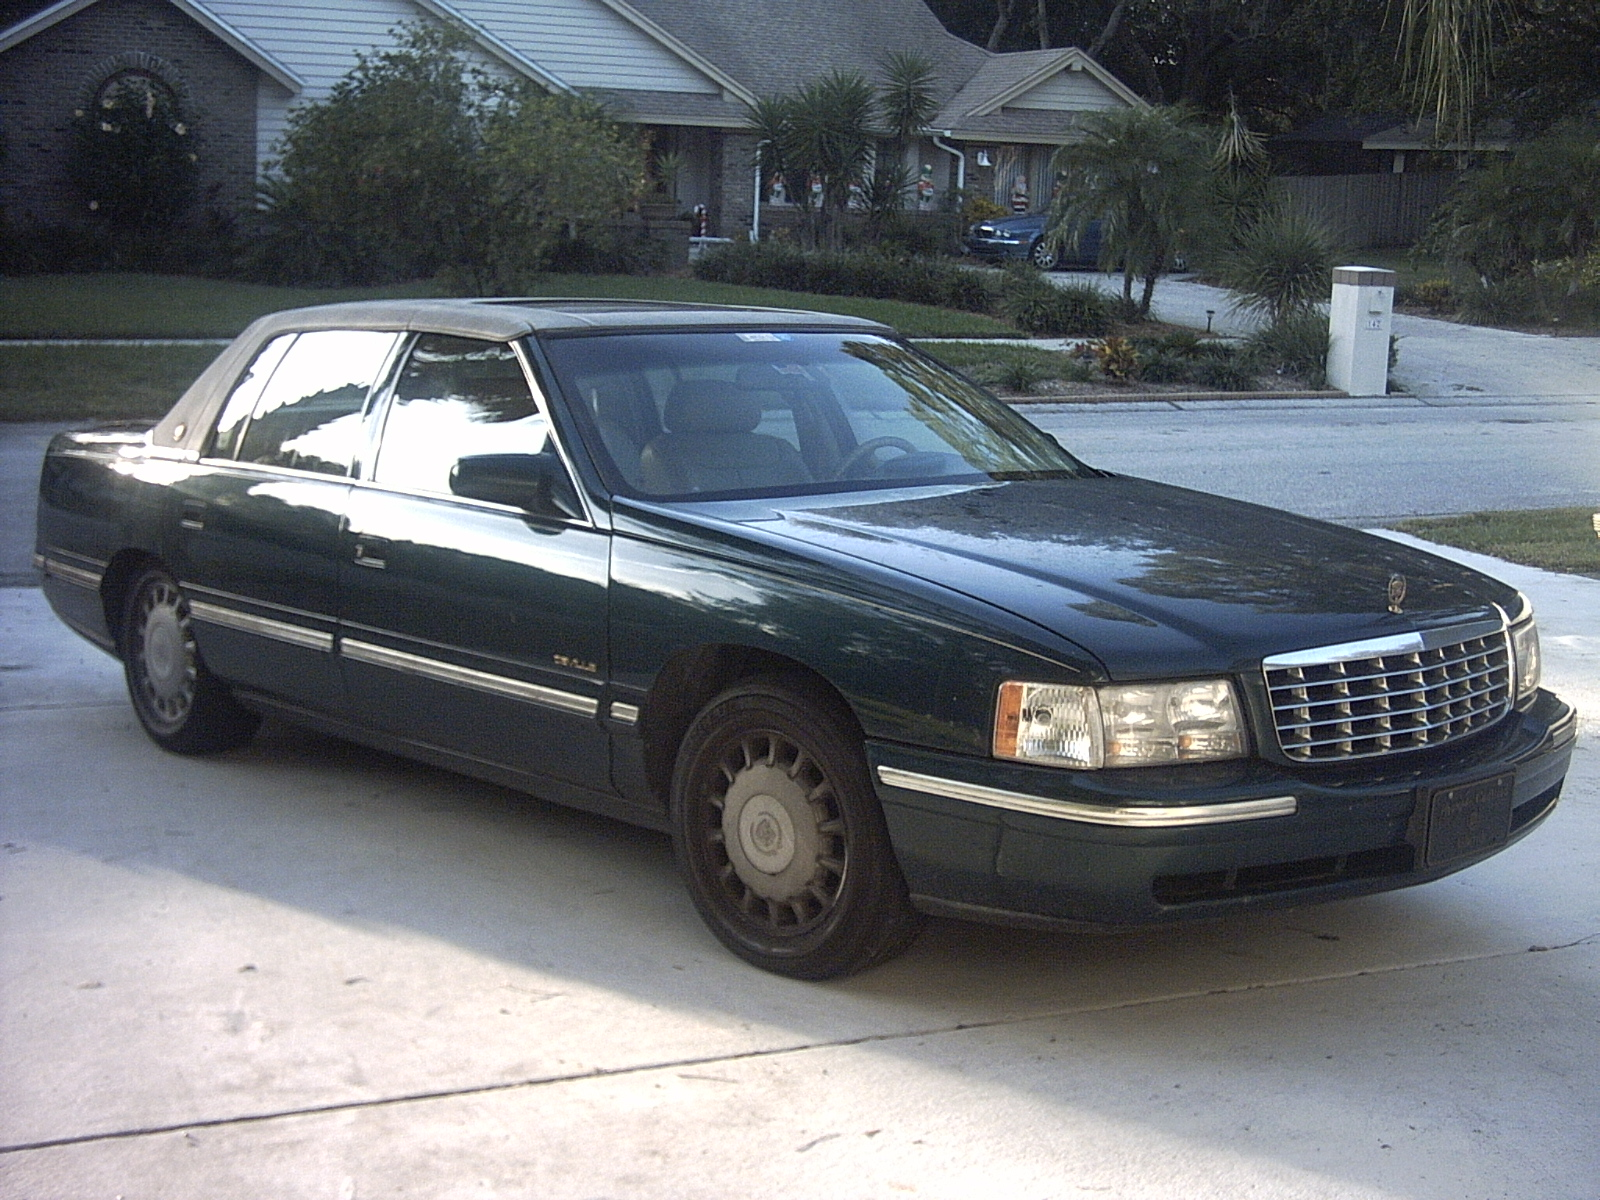 1997 Cadillac DeVille 4 Dr STD Sedan picture